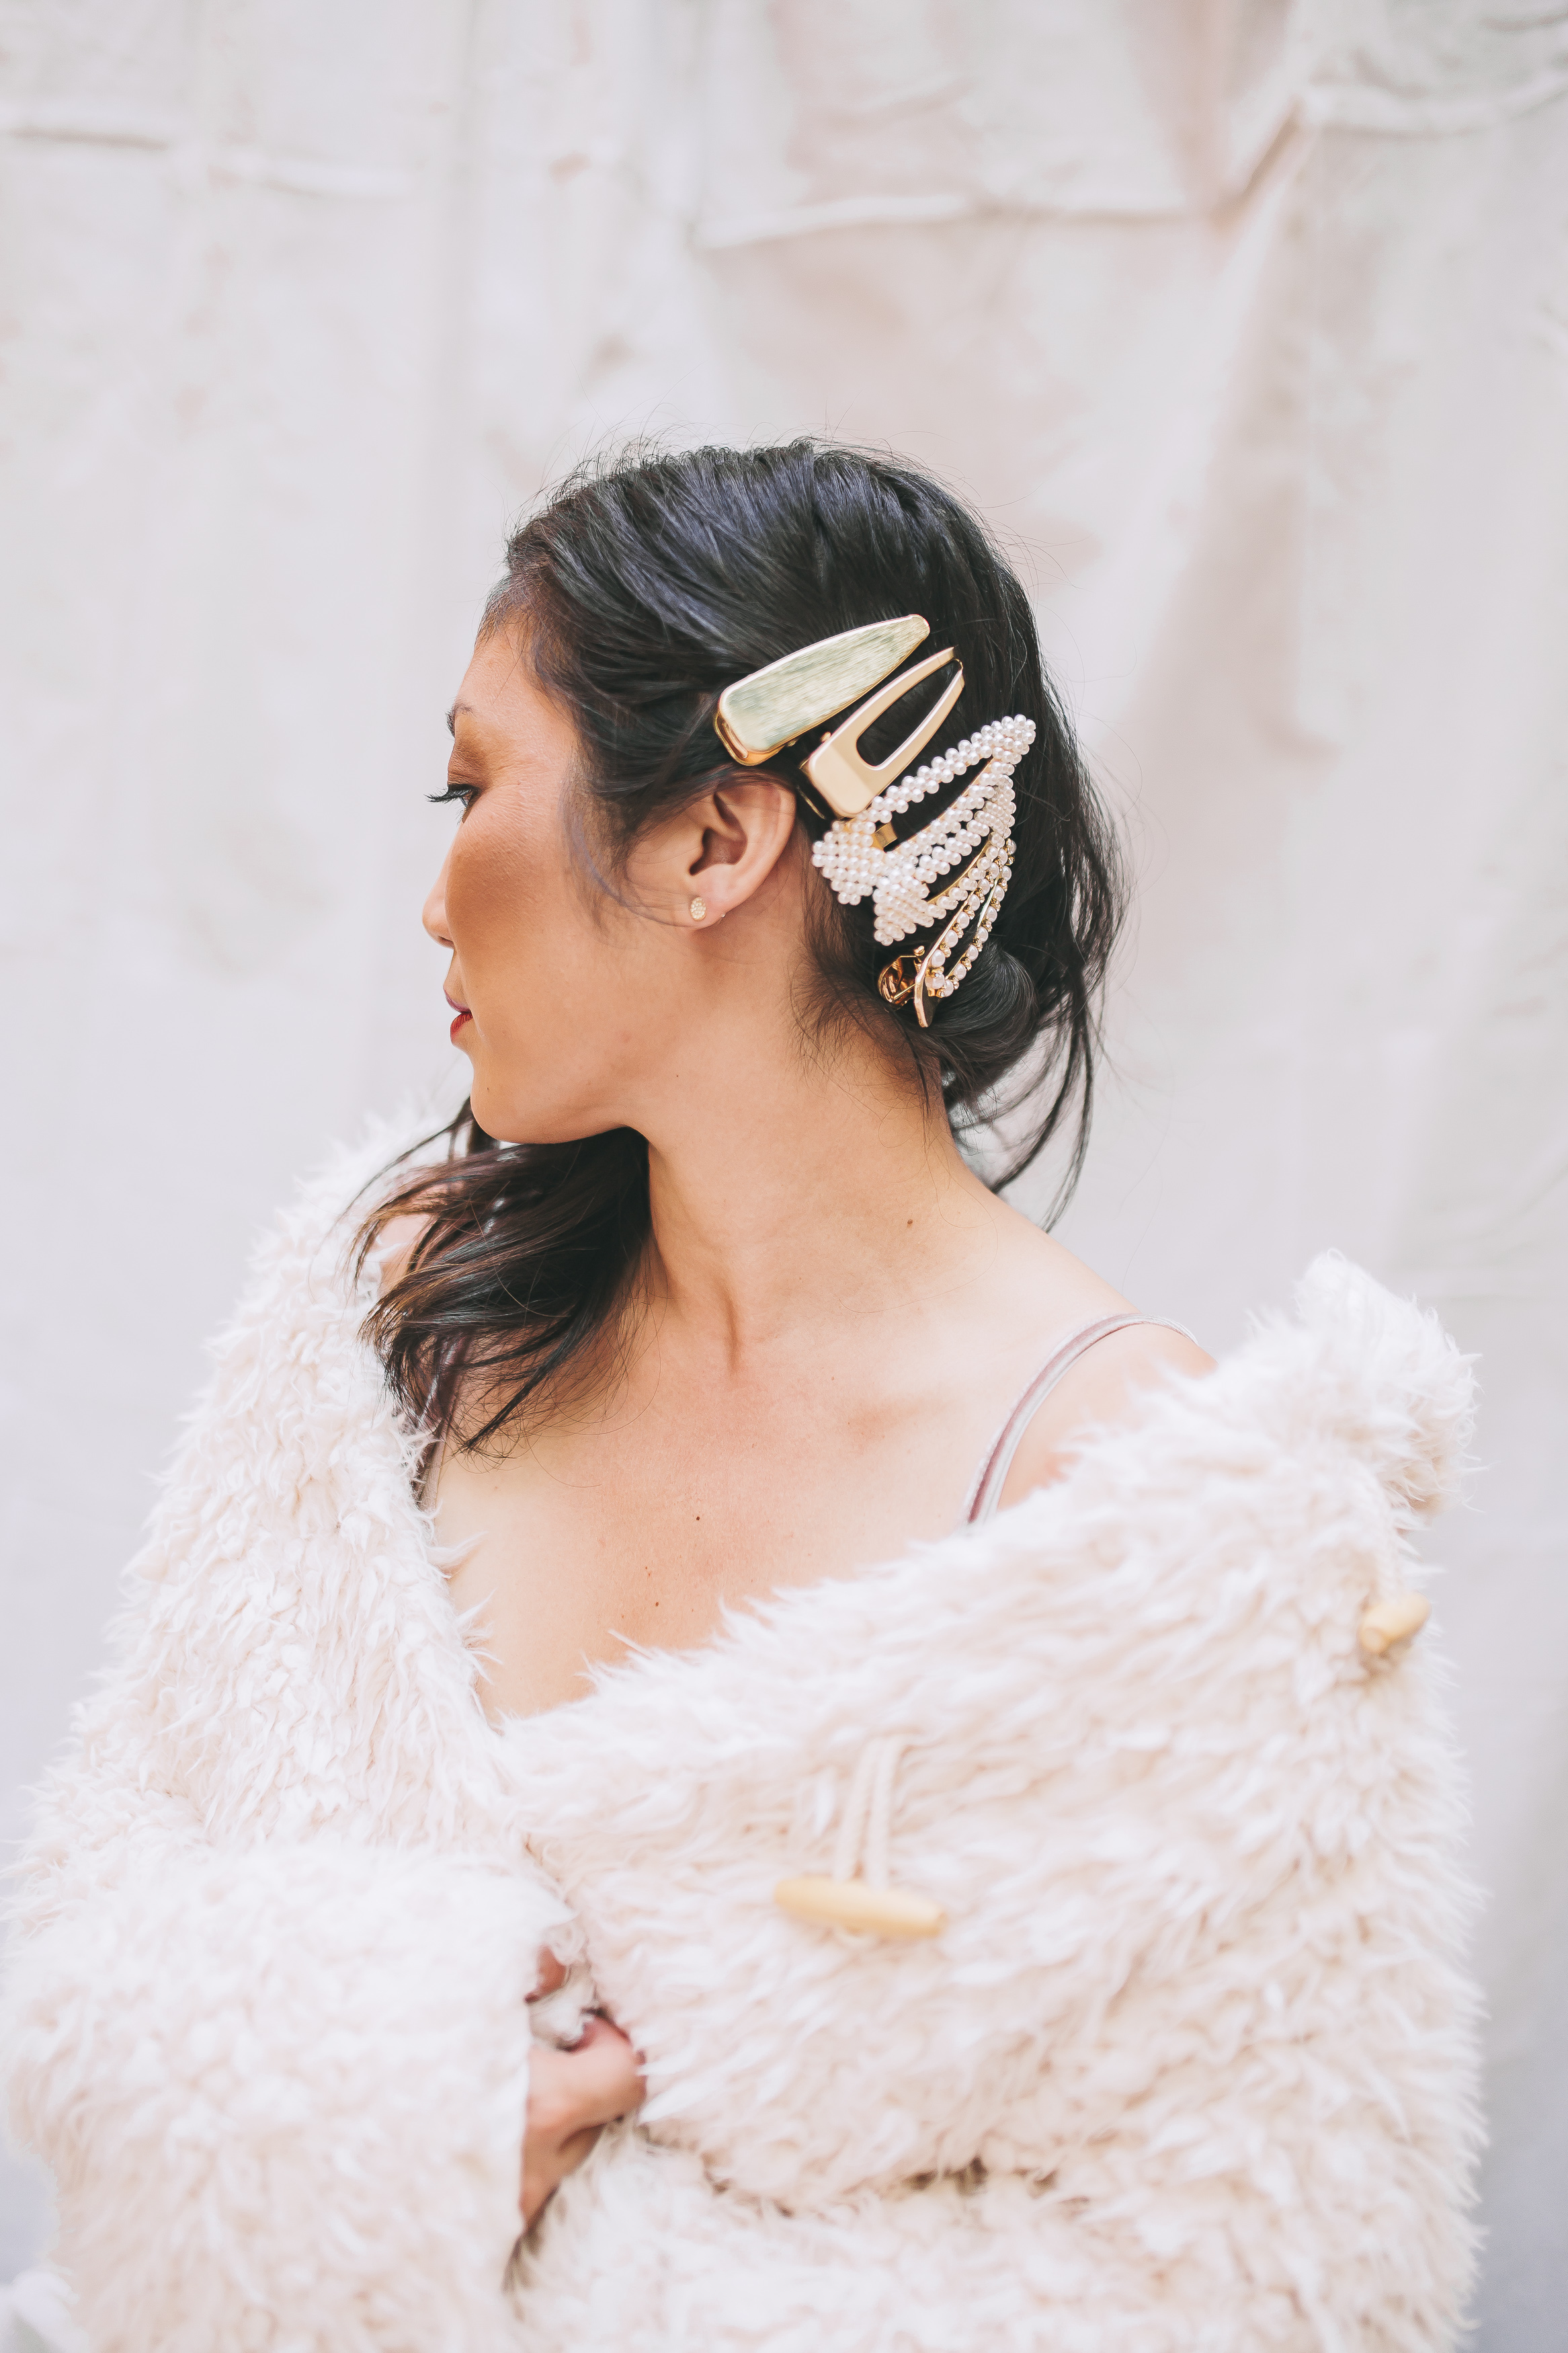 Hair Accessories are REALLY  in this season. (Image: Mandee Rae/Style Witch)